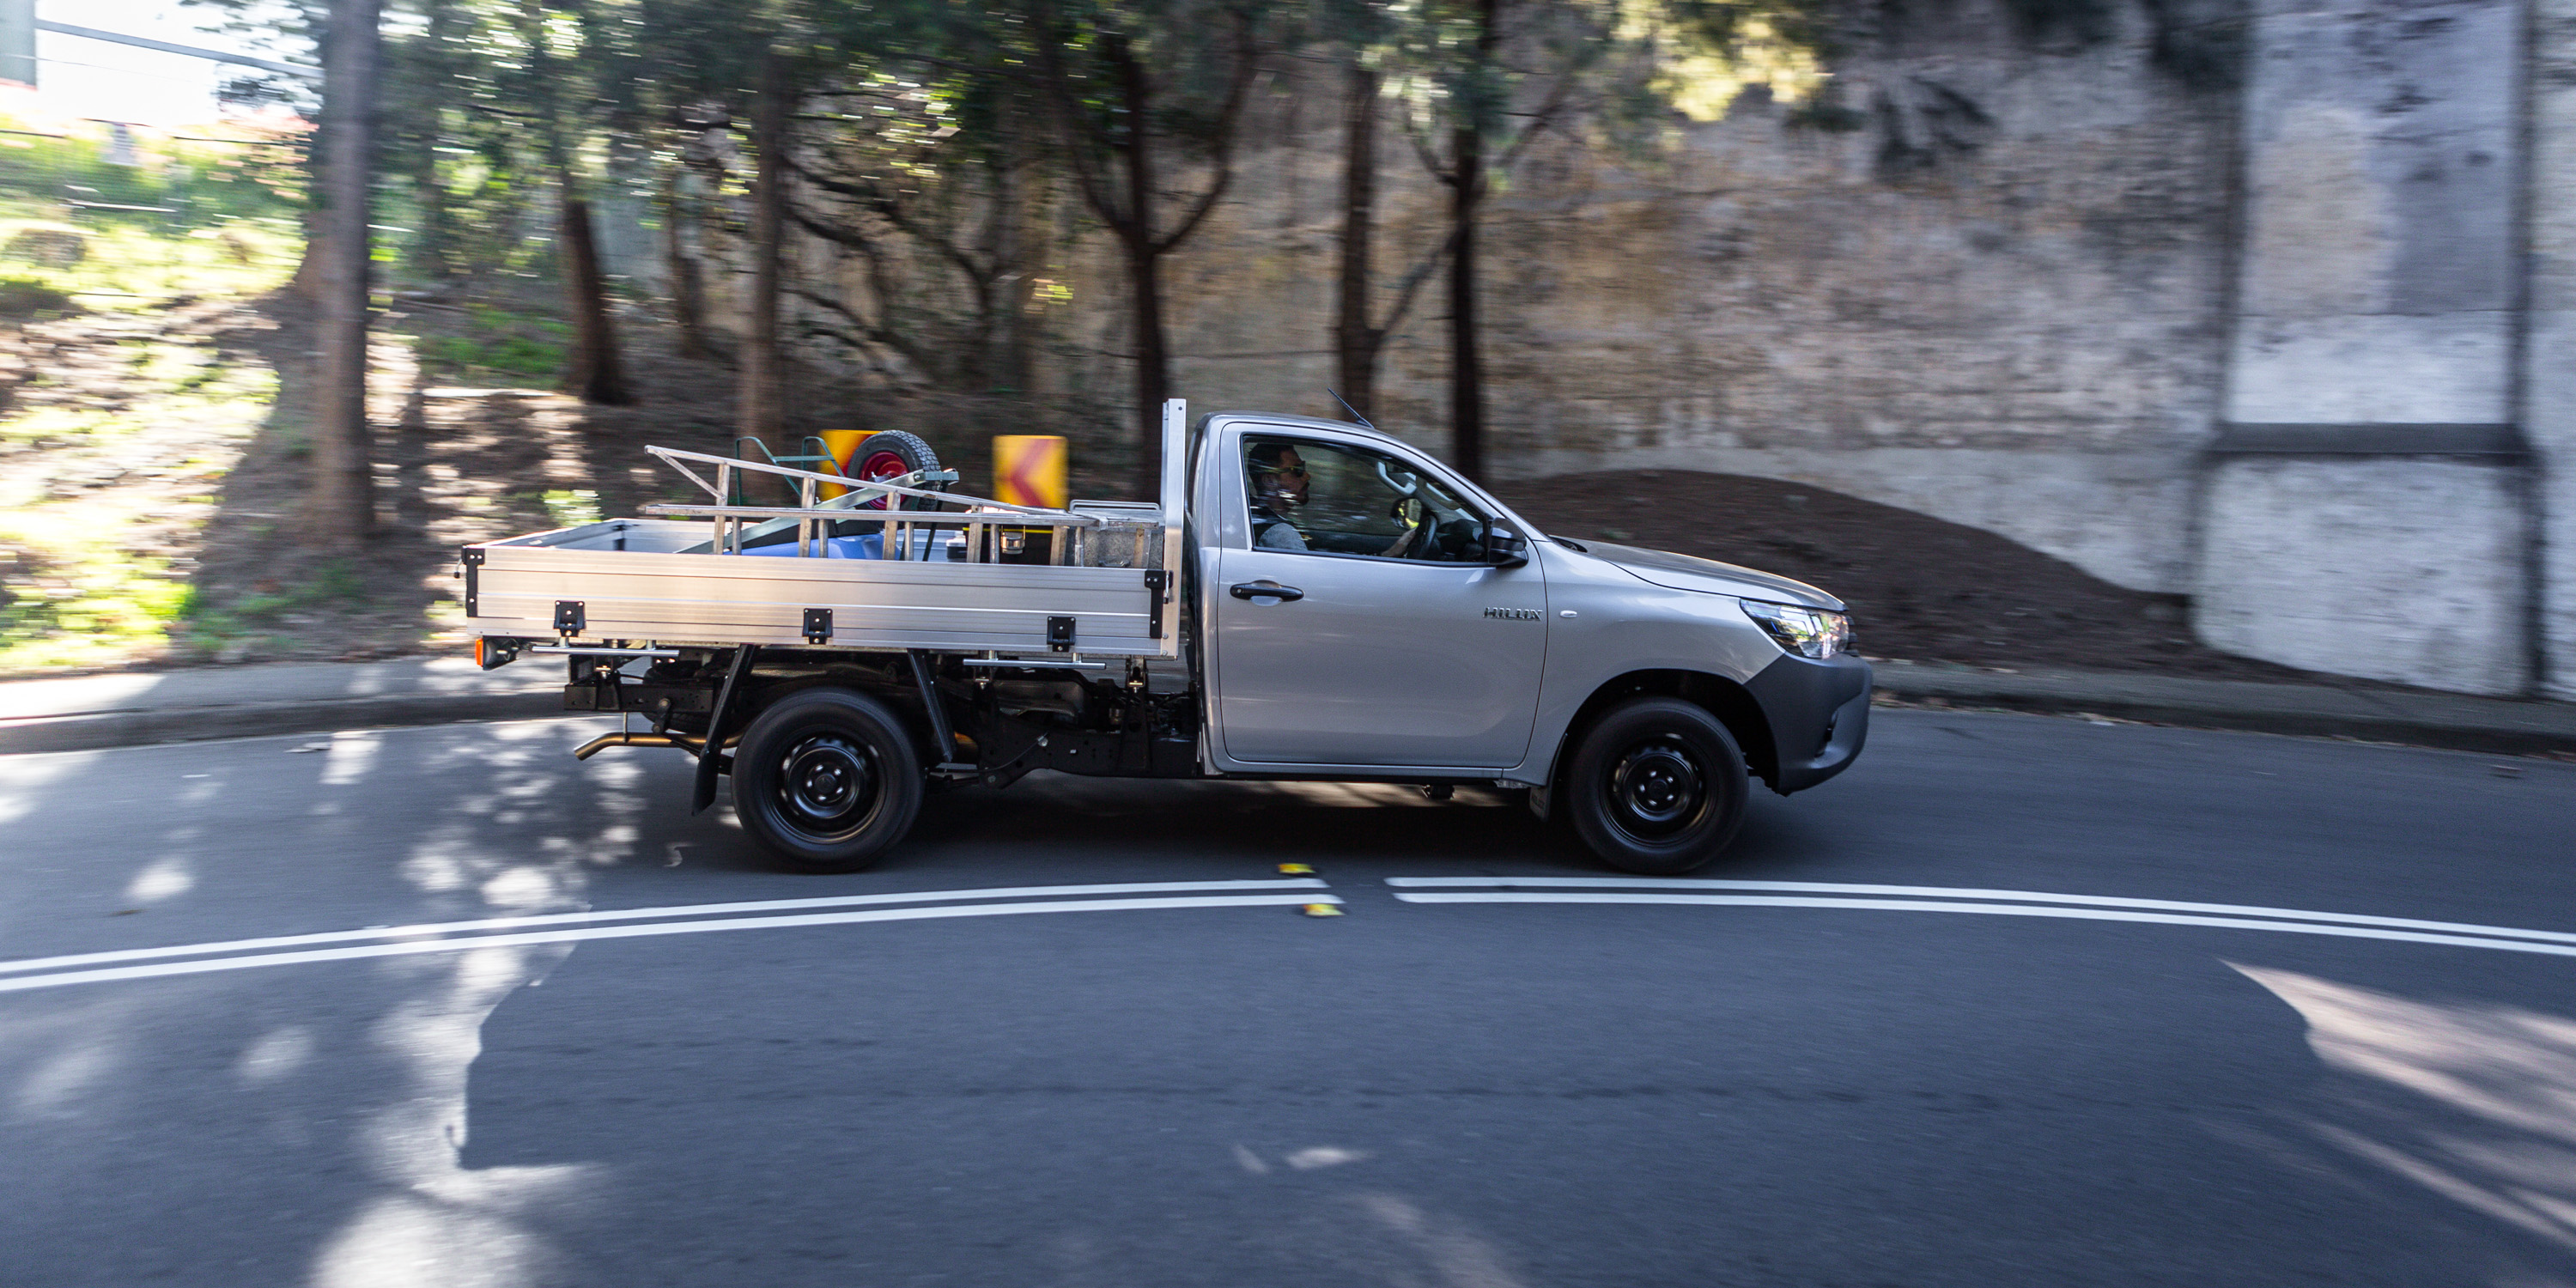 2016 toyota hilux sr 4x4 cab chassis review caradvice - 2016 Toyota Hilux Workmate 4x2 Single Cab Review